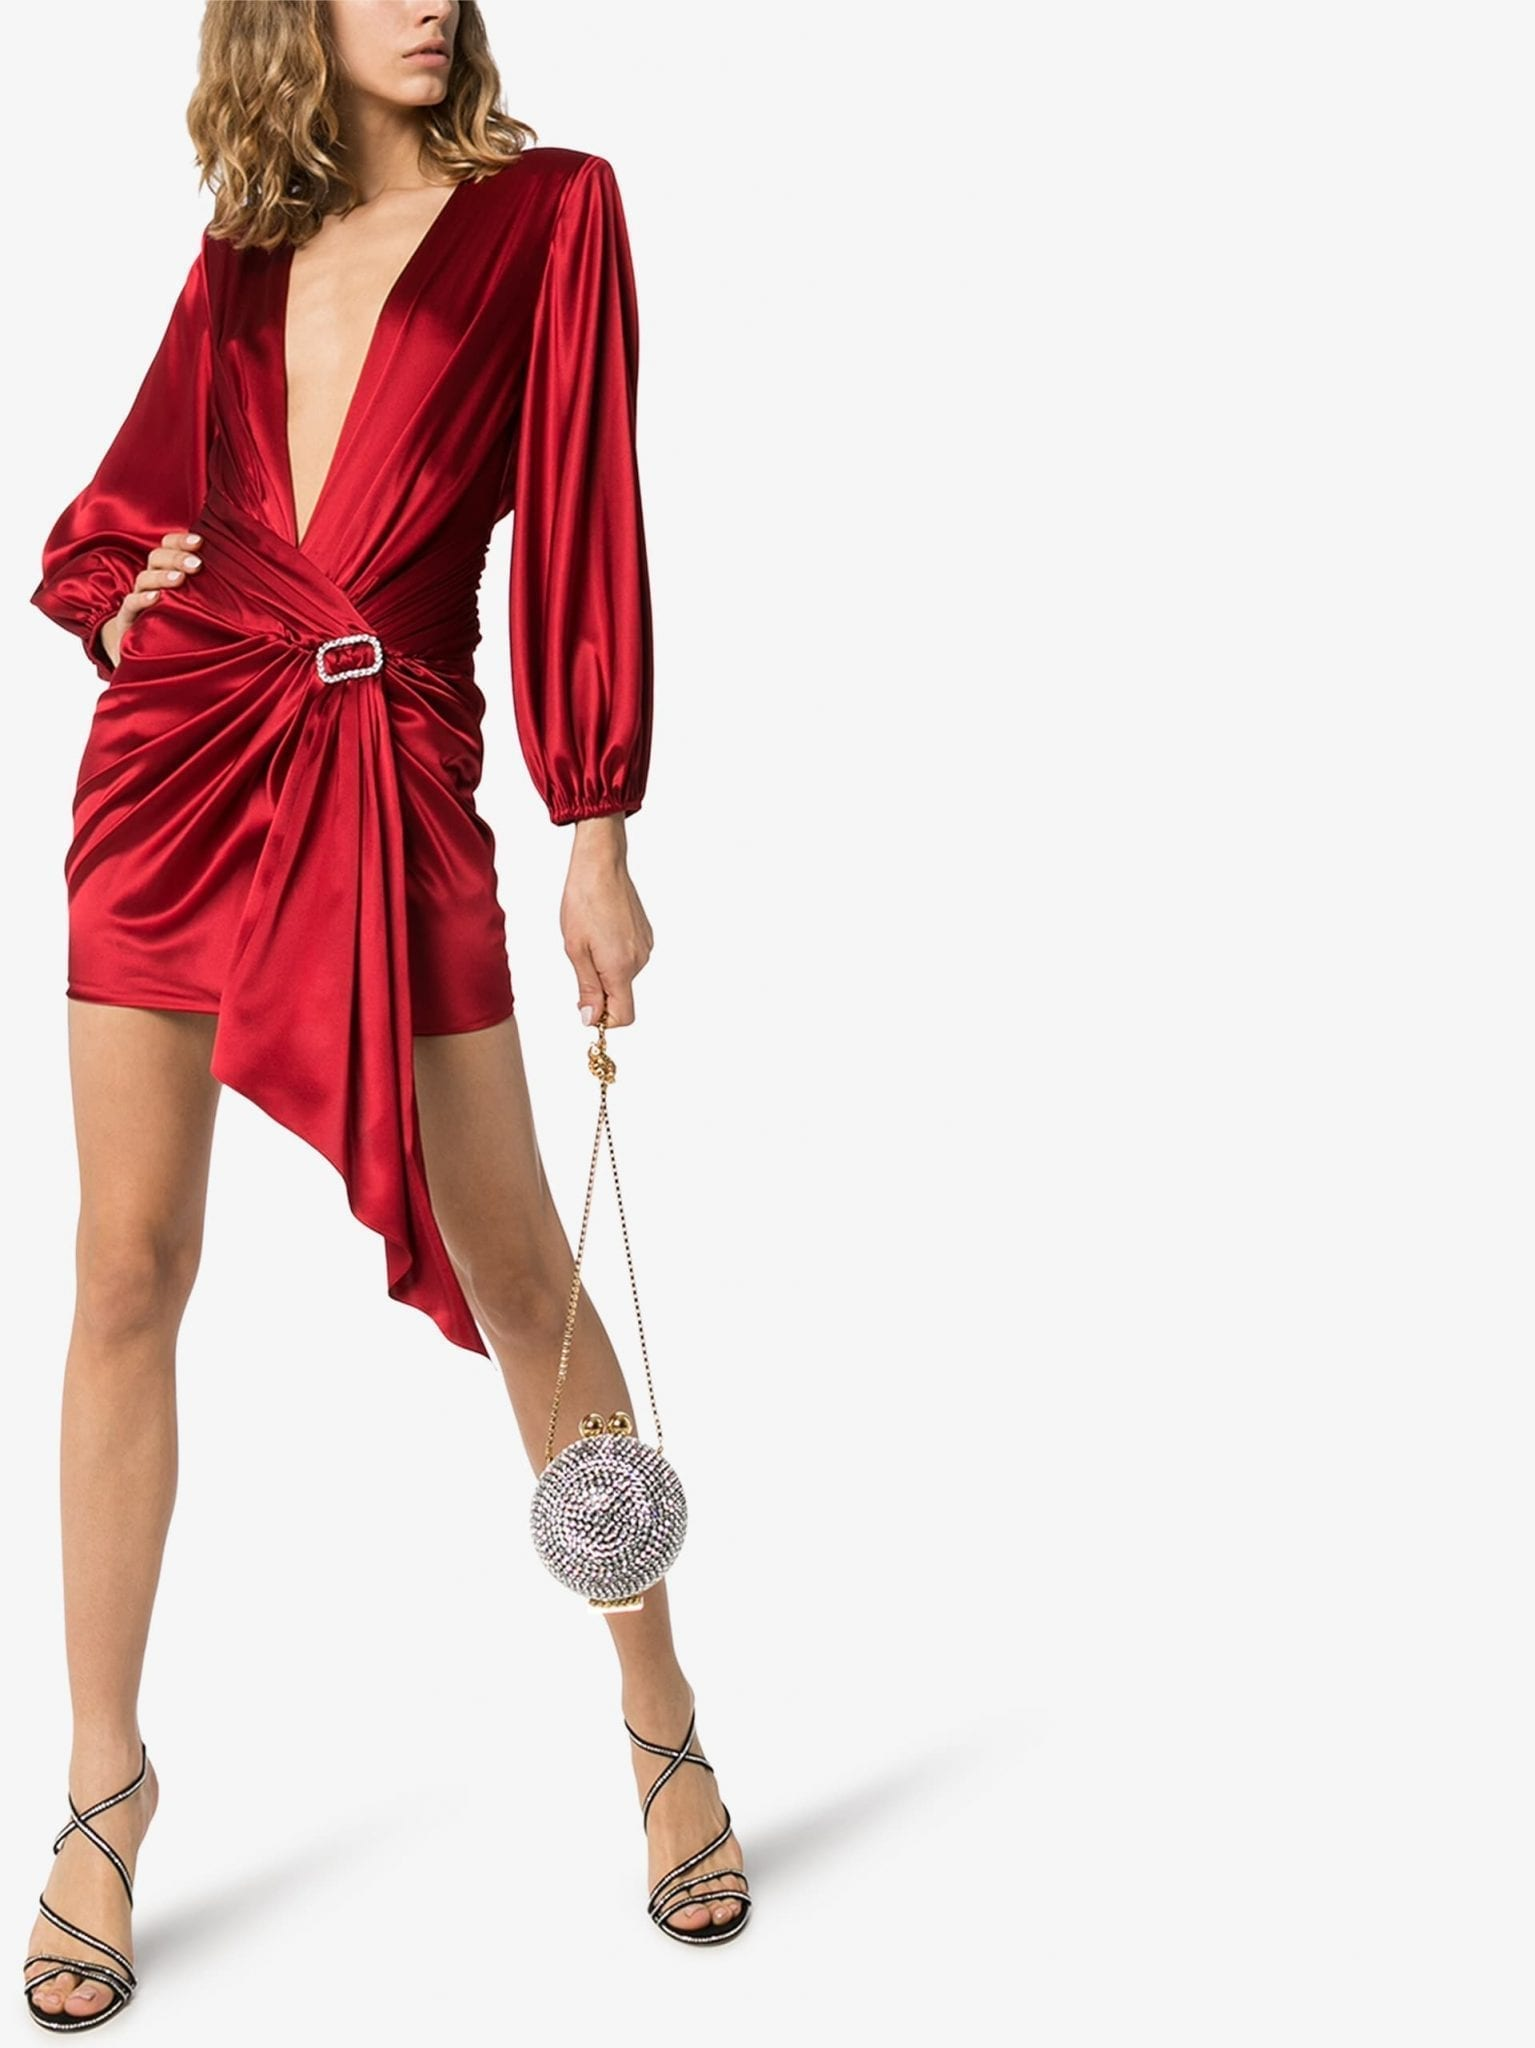 ALEXANDRE VAUTHIER Crystal Buckle Draped Mini Dress